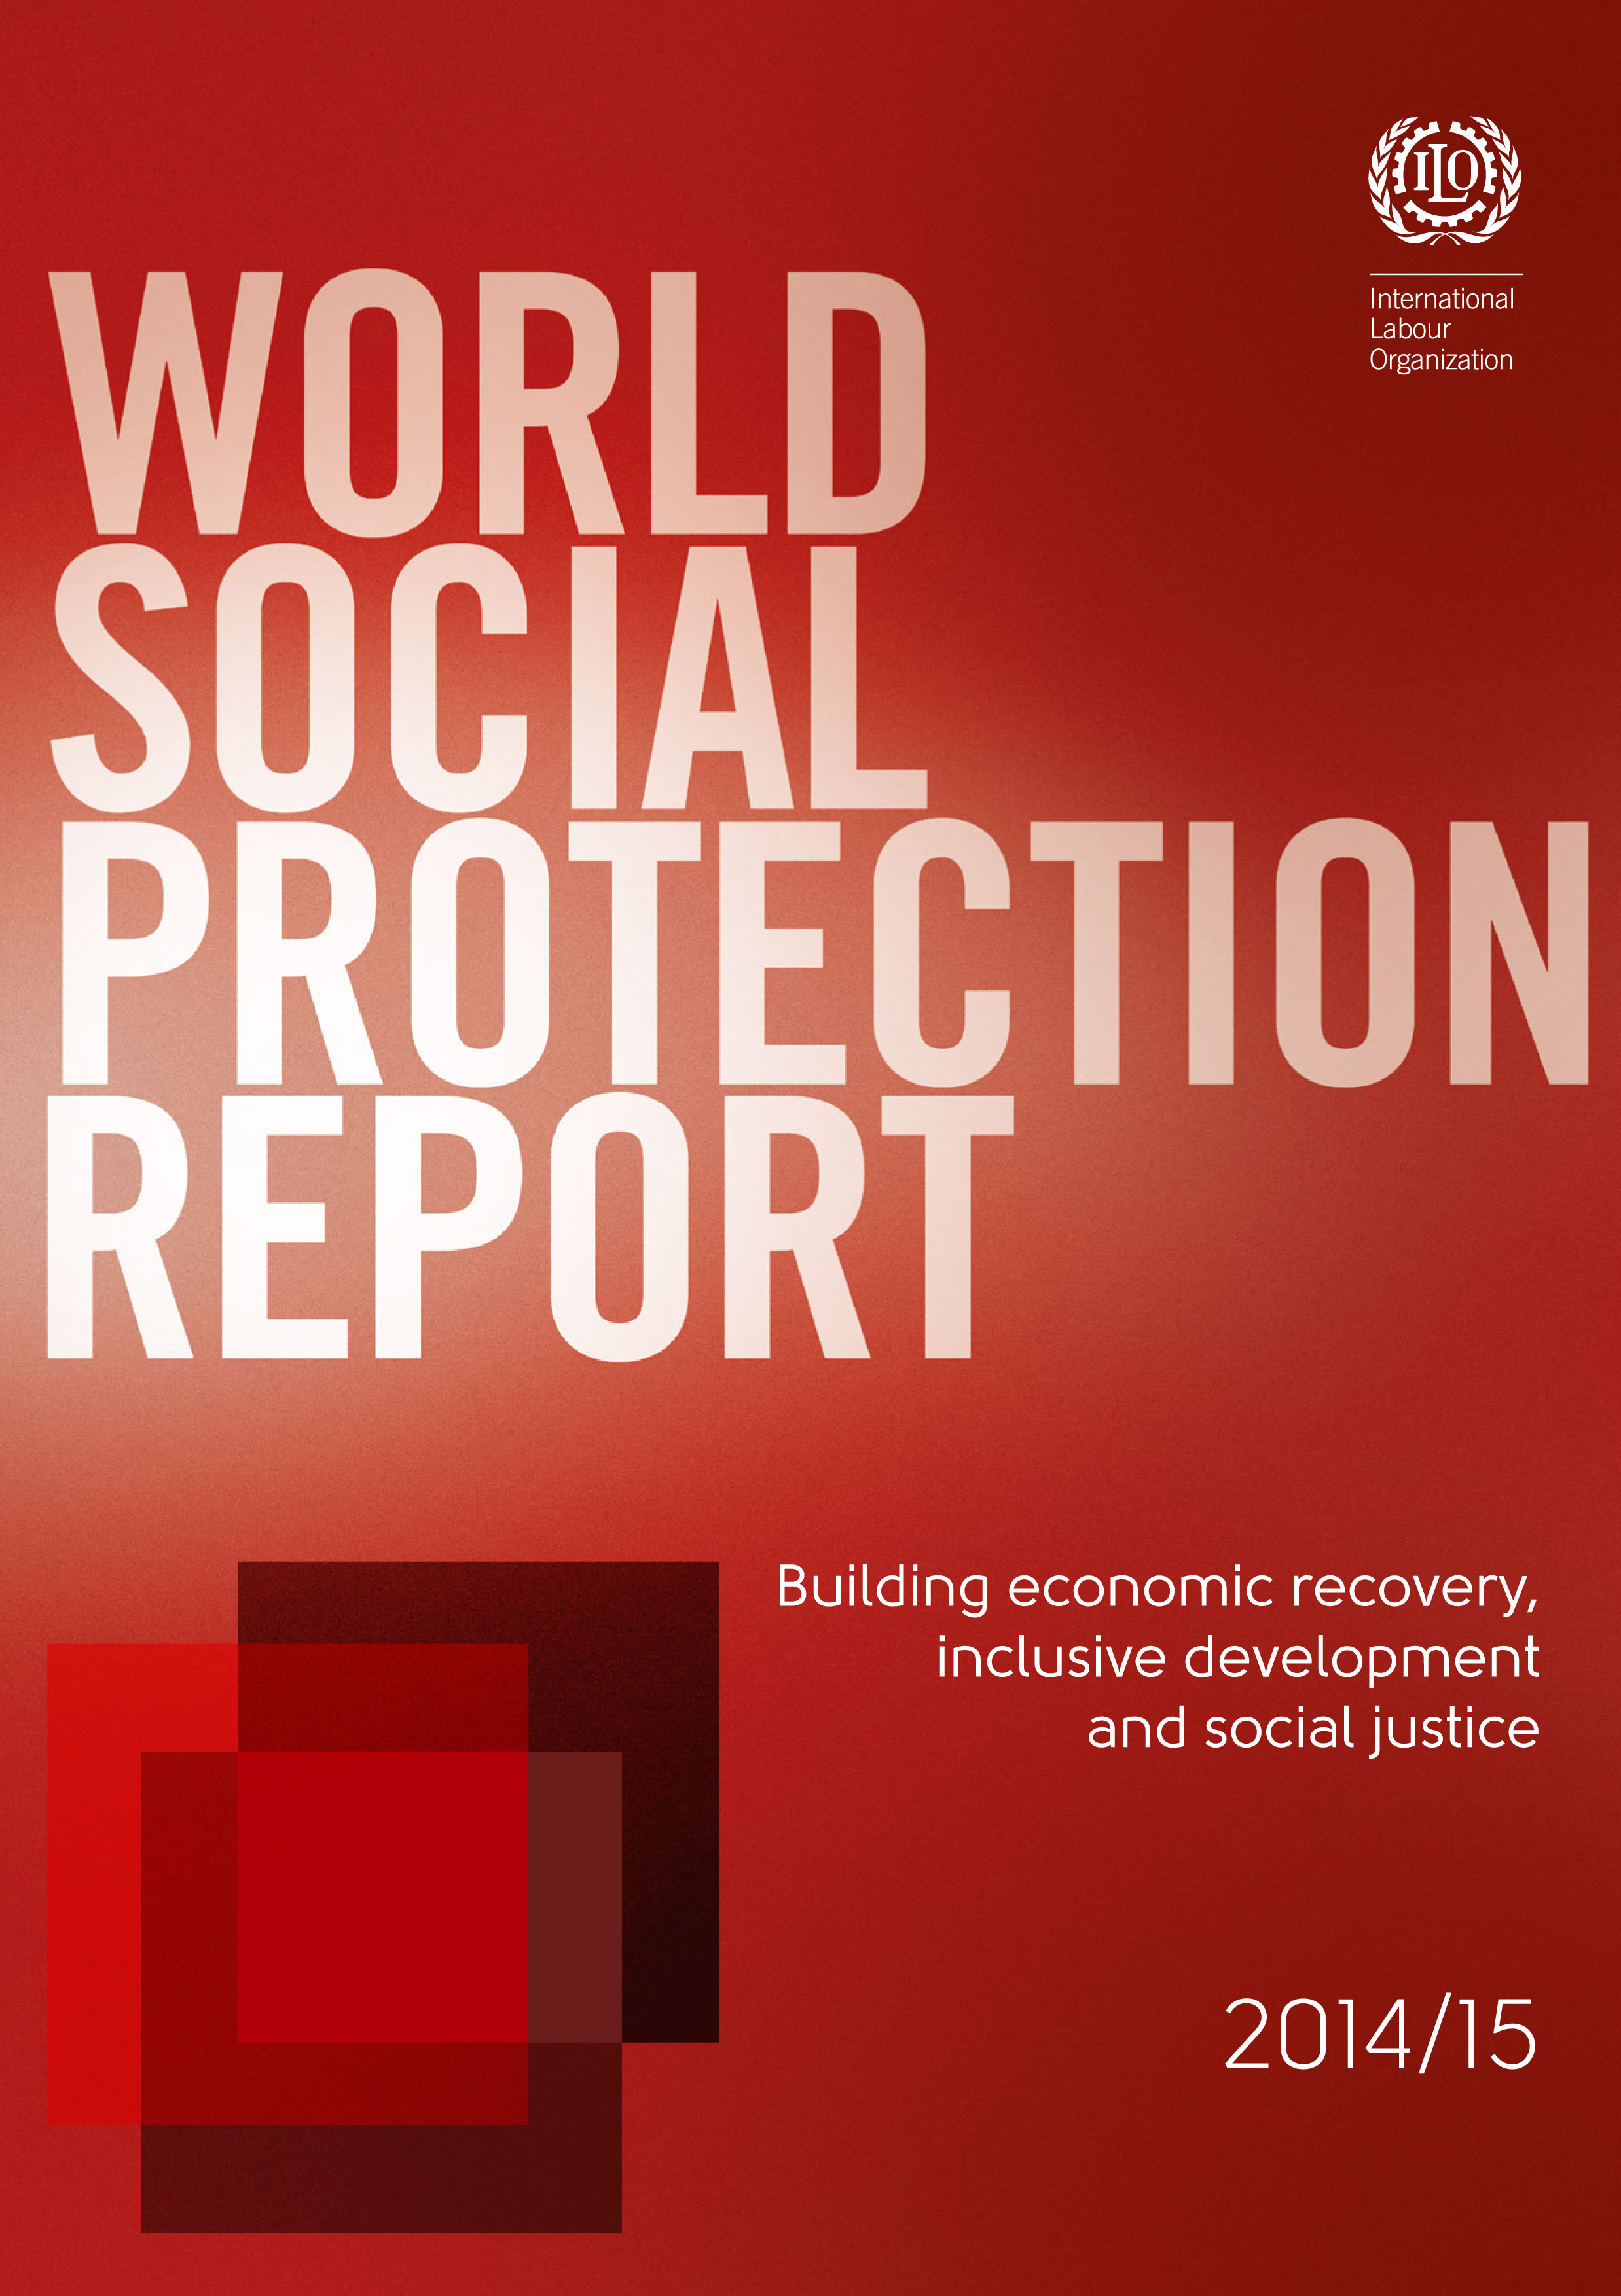 World Social Protection Report 2014-15